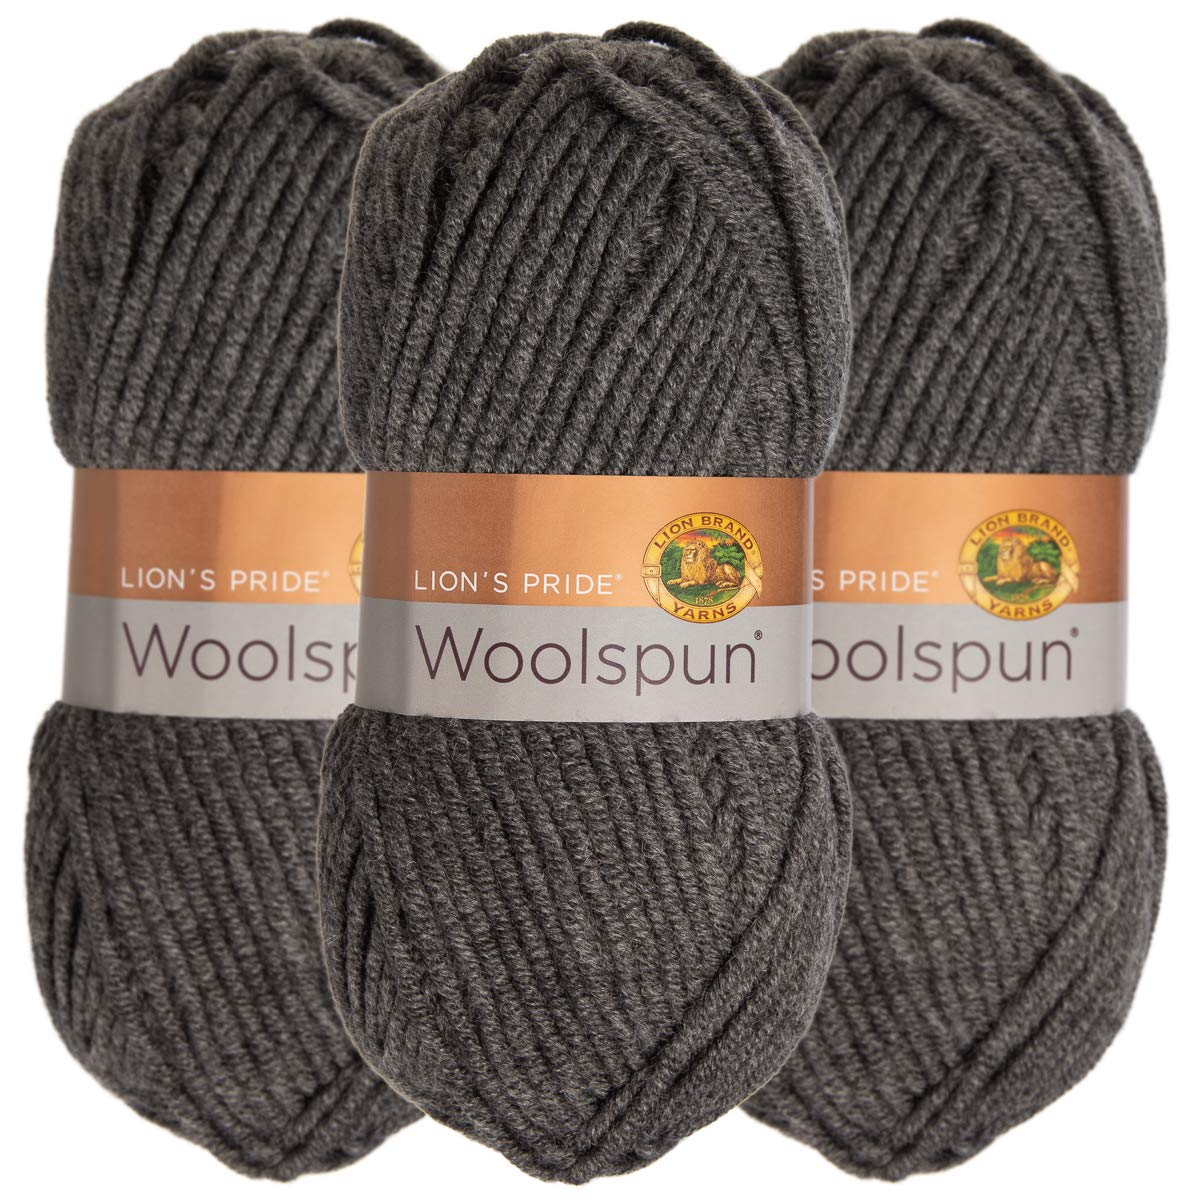 Lion Brand (3 Pack) Woolspun Acrylic & Wool Soft Charcoal Gray Yarn for Knitting Crocheting Bulky #5